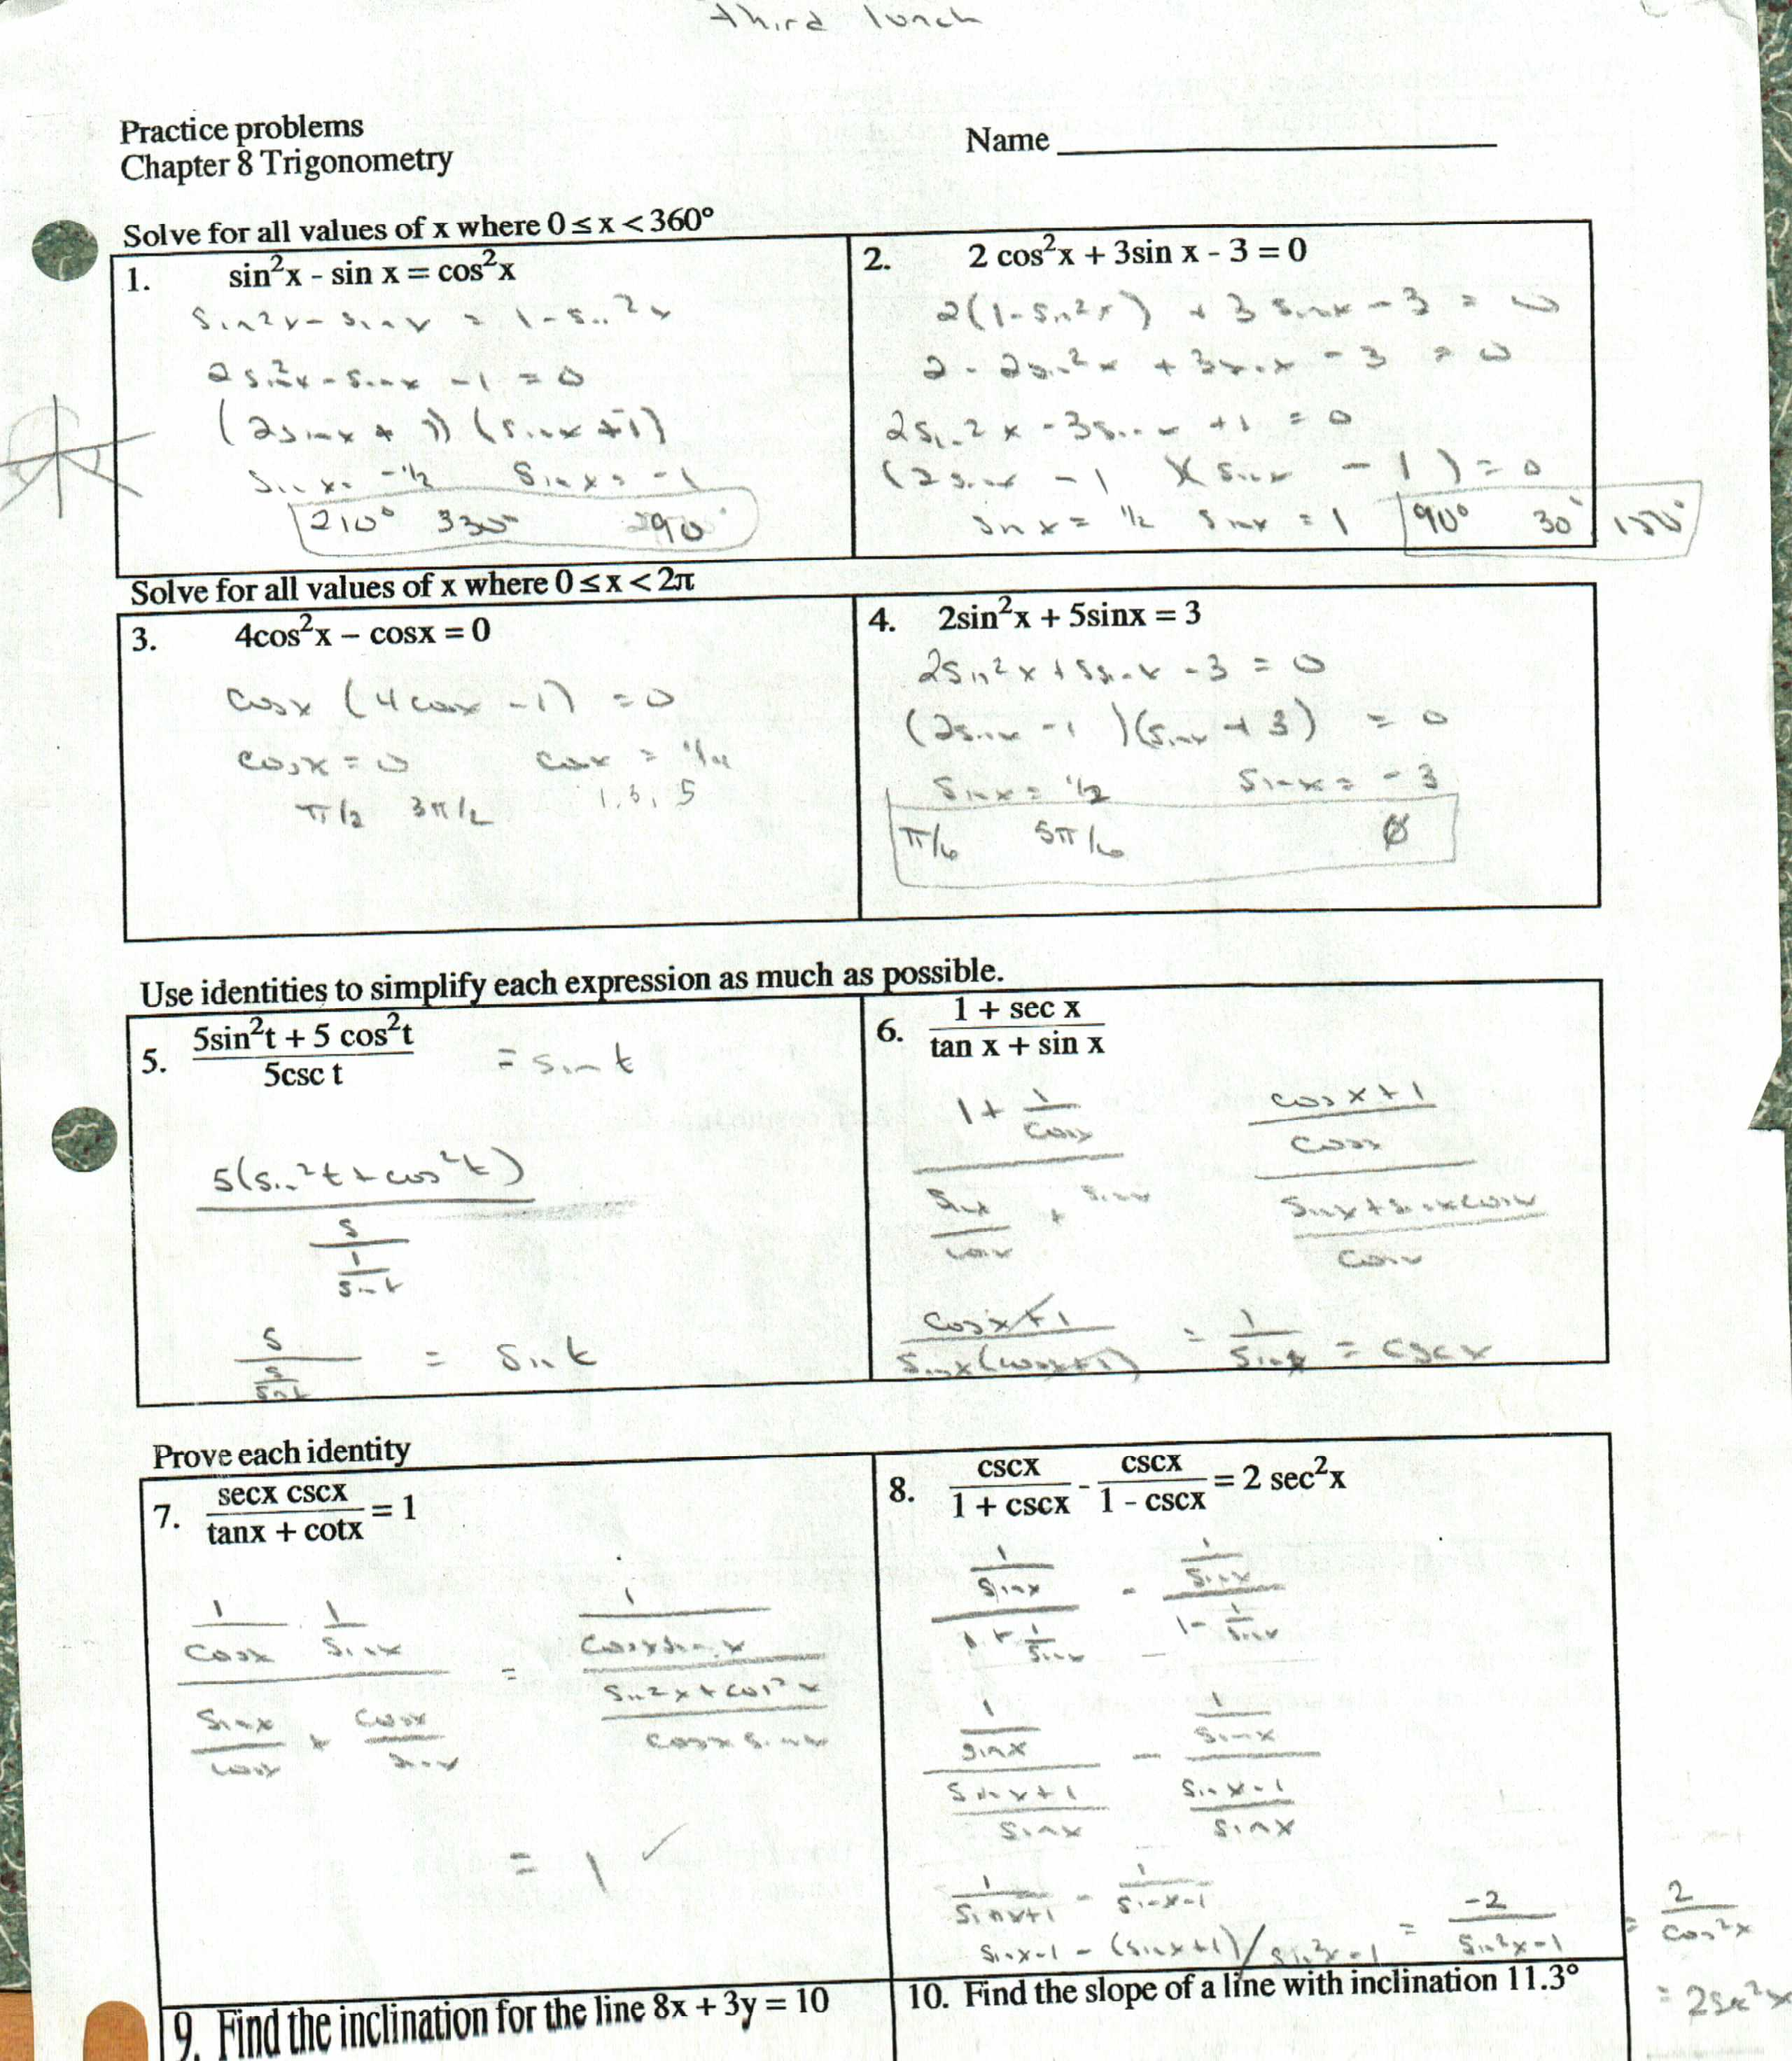 Worksheets Trigonometric Identities Worksheet trigonometric identities worksheet free worksheets library another good puzzlebut this time its for the trig identities